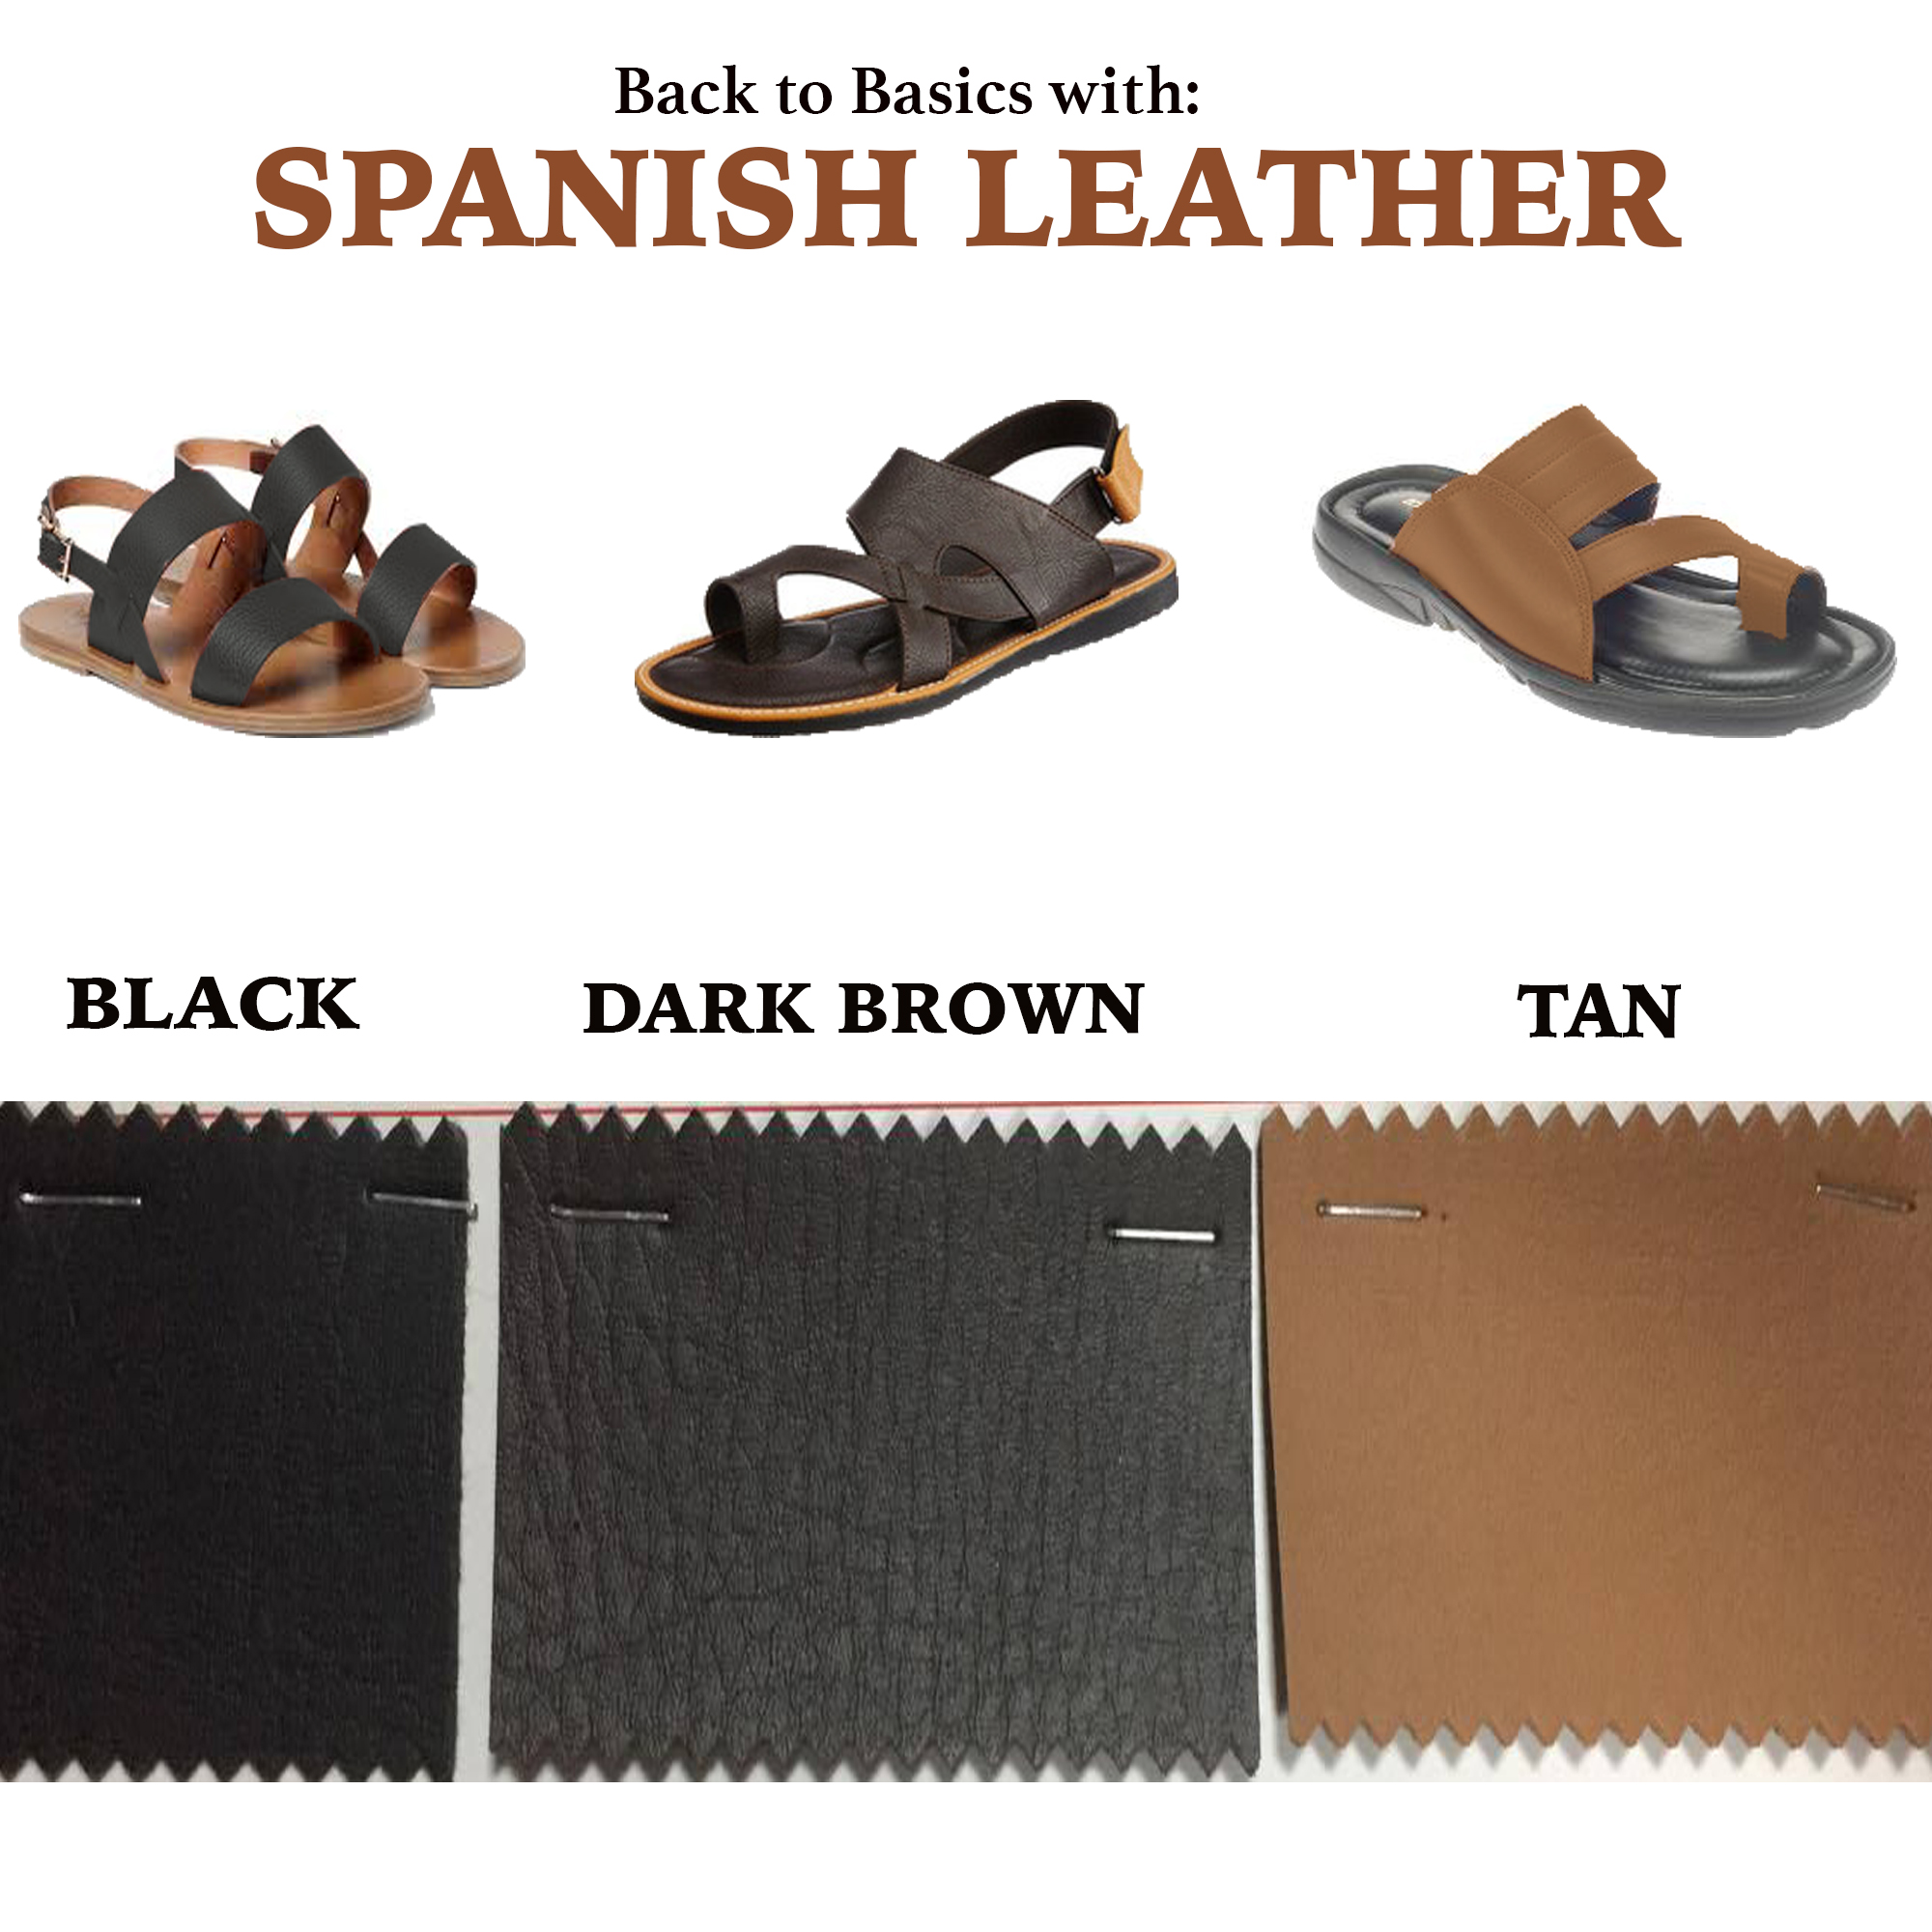 Final Spanish Leather Post